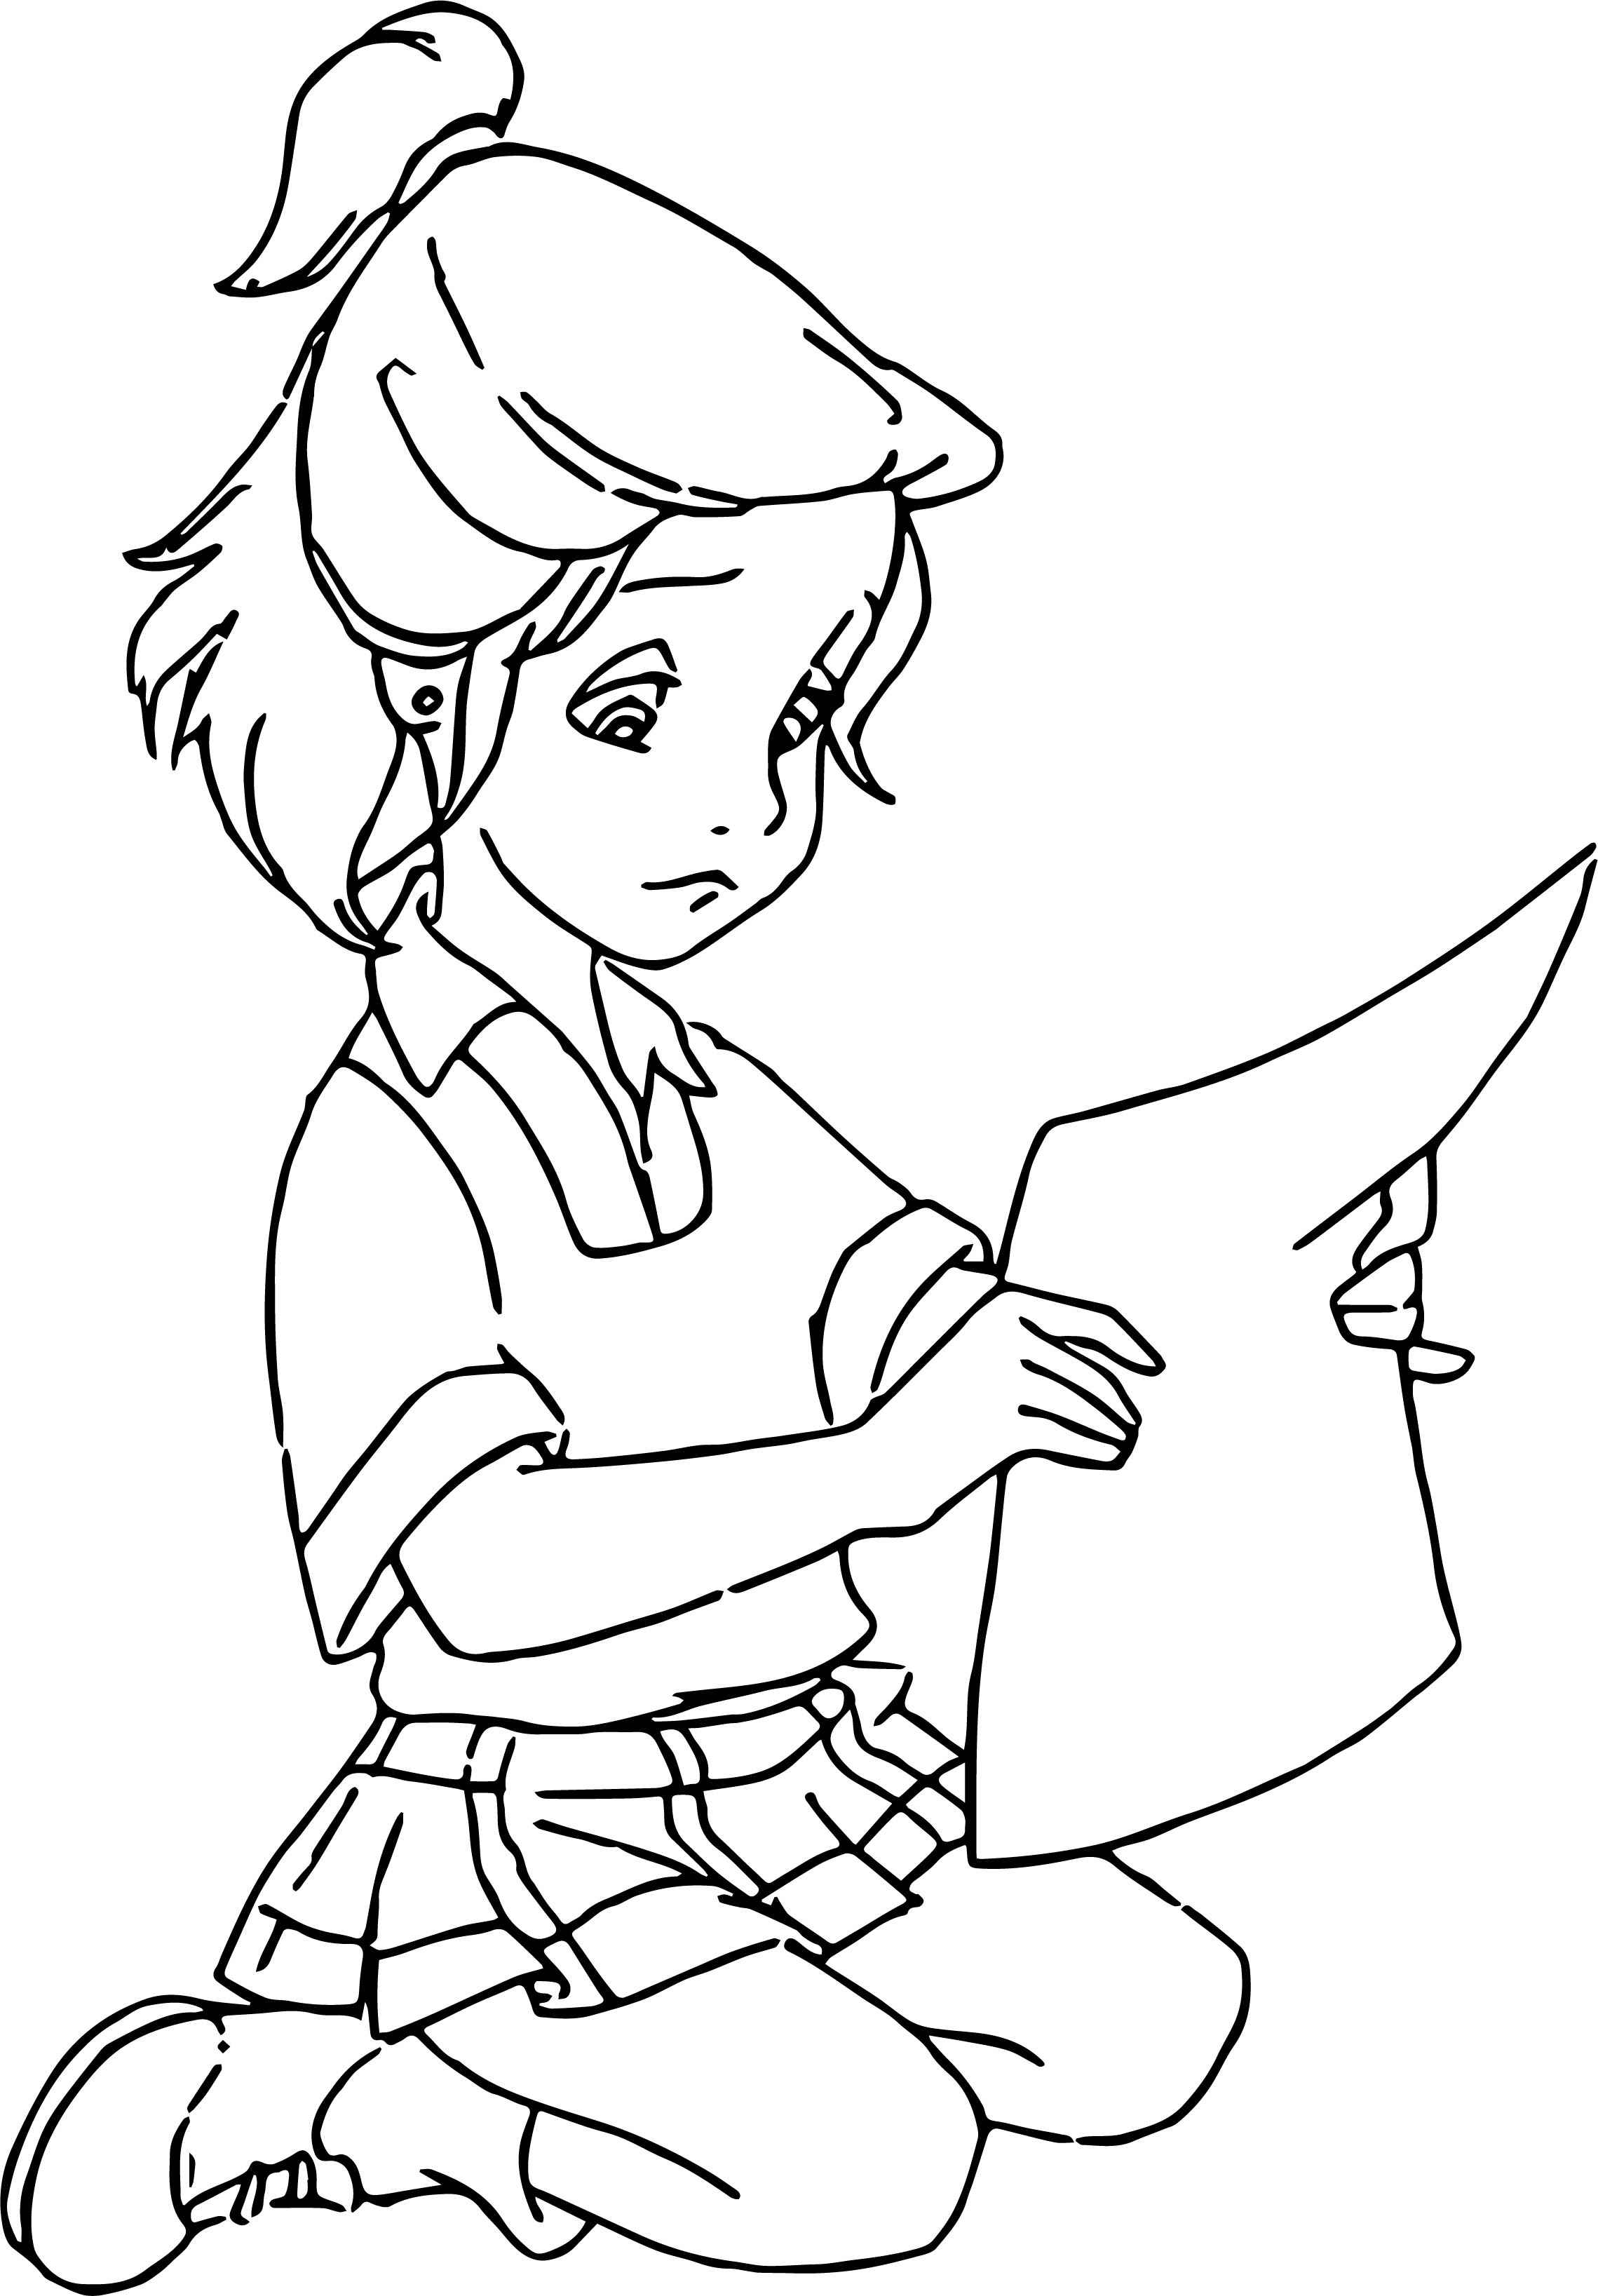 Jenny Girl 1 Coloring Pages